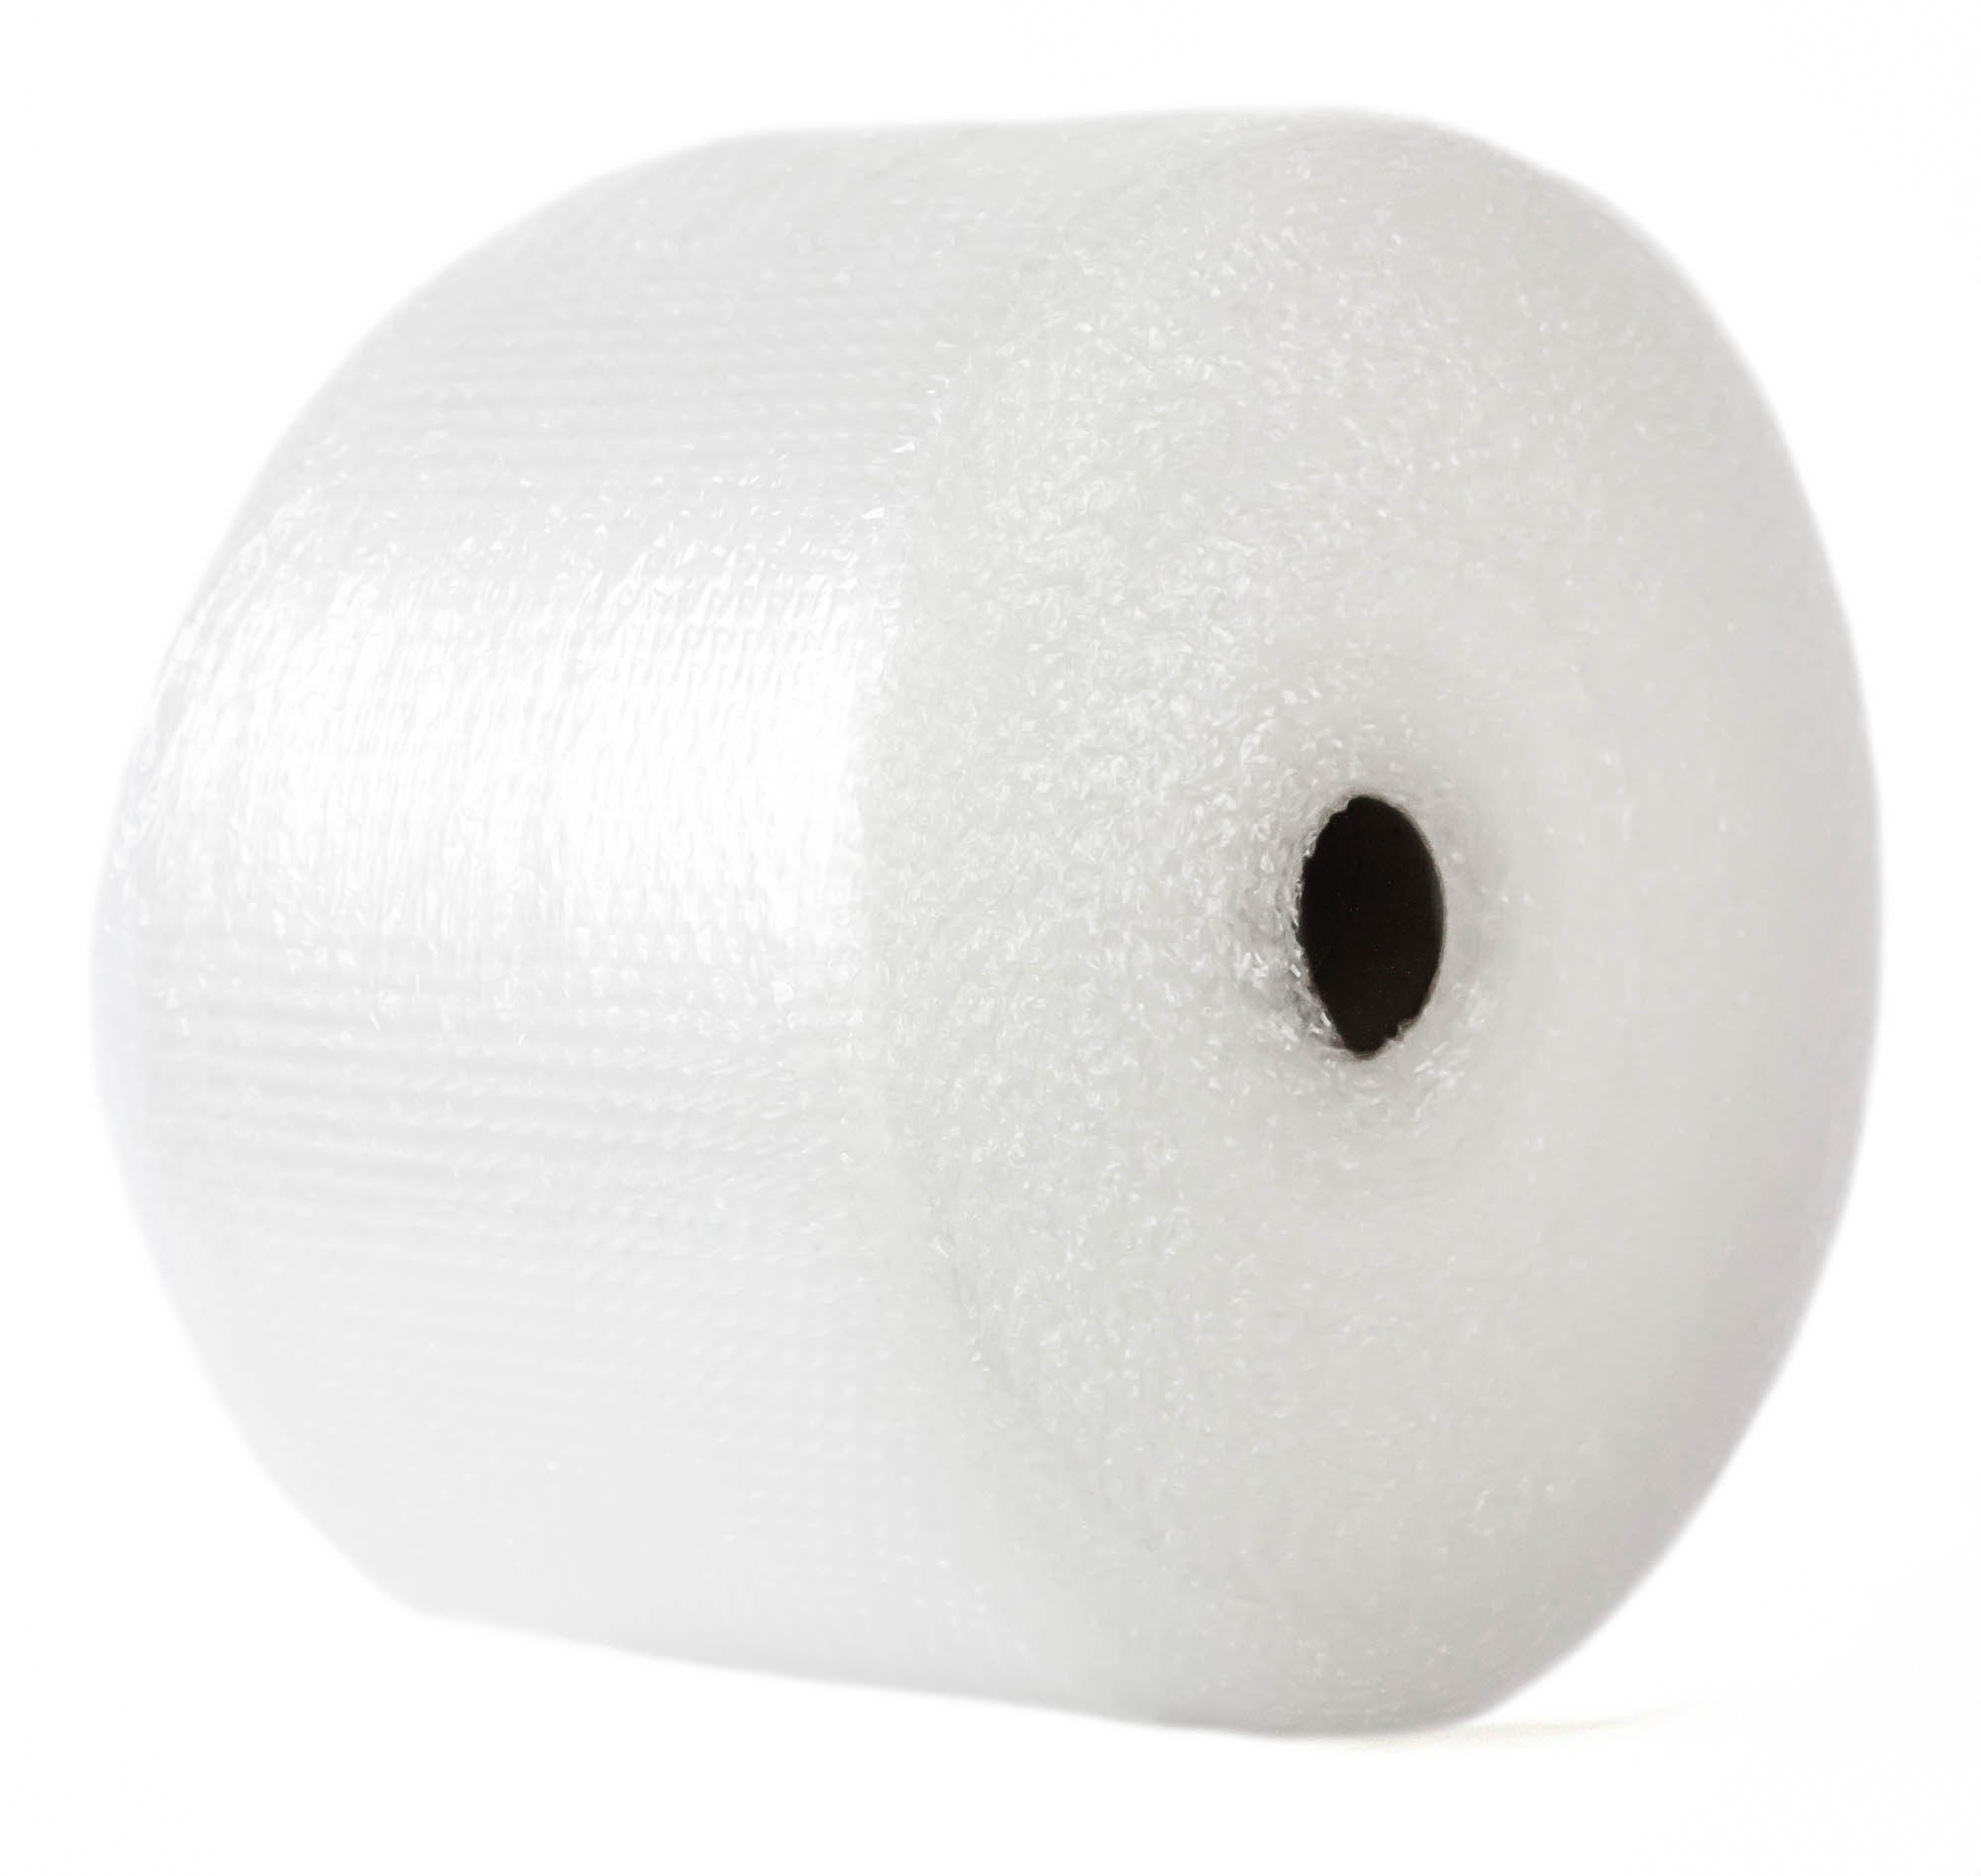 Small 3/16 inch Bubble Cushioning Wrap Slit 12 by 12 Perf 525 Foot Roll Lightweight Protective Packaging Material in Rolls/Perforated Sheets for Moving, Shipping, Padding and Packaging by B2Bboxes (Image #1)